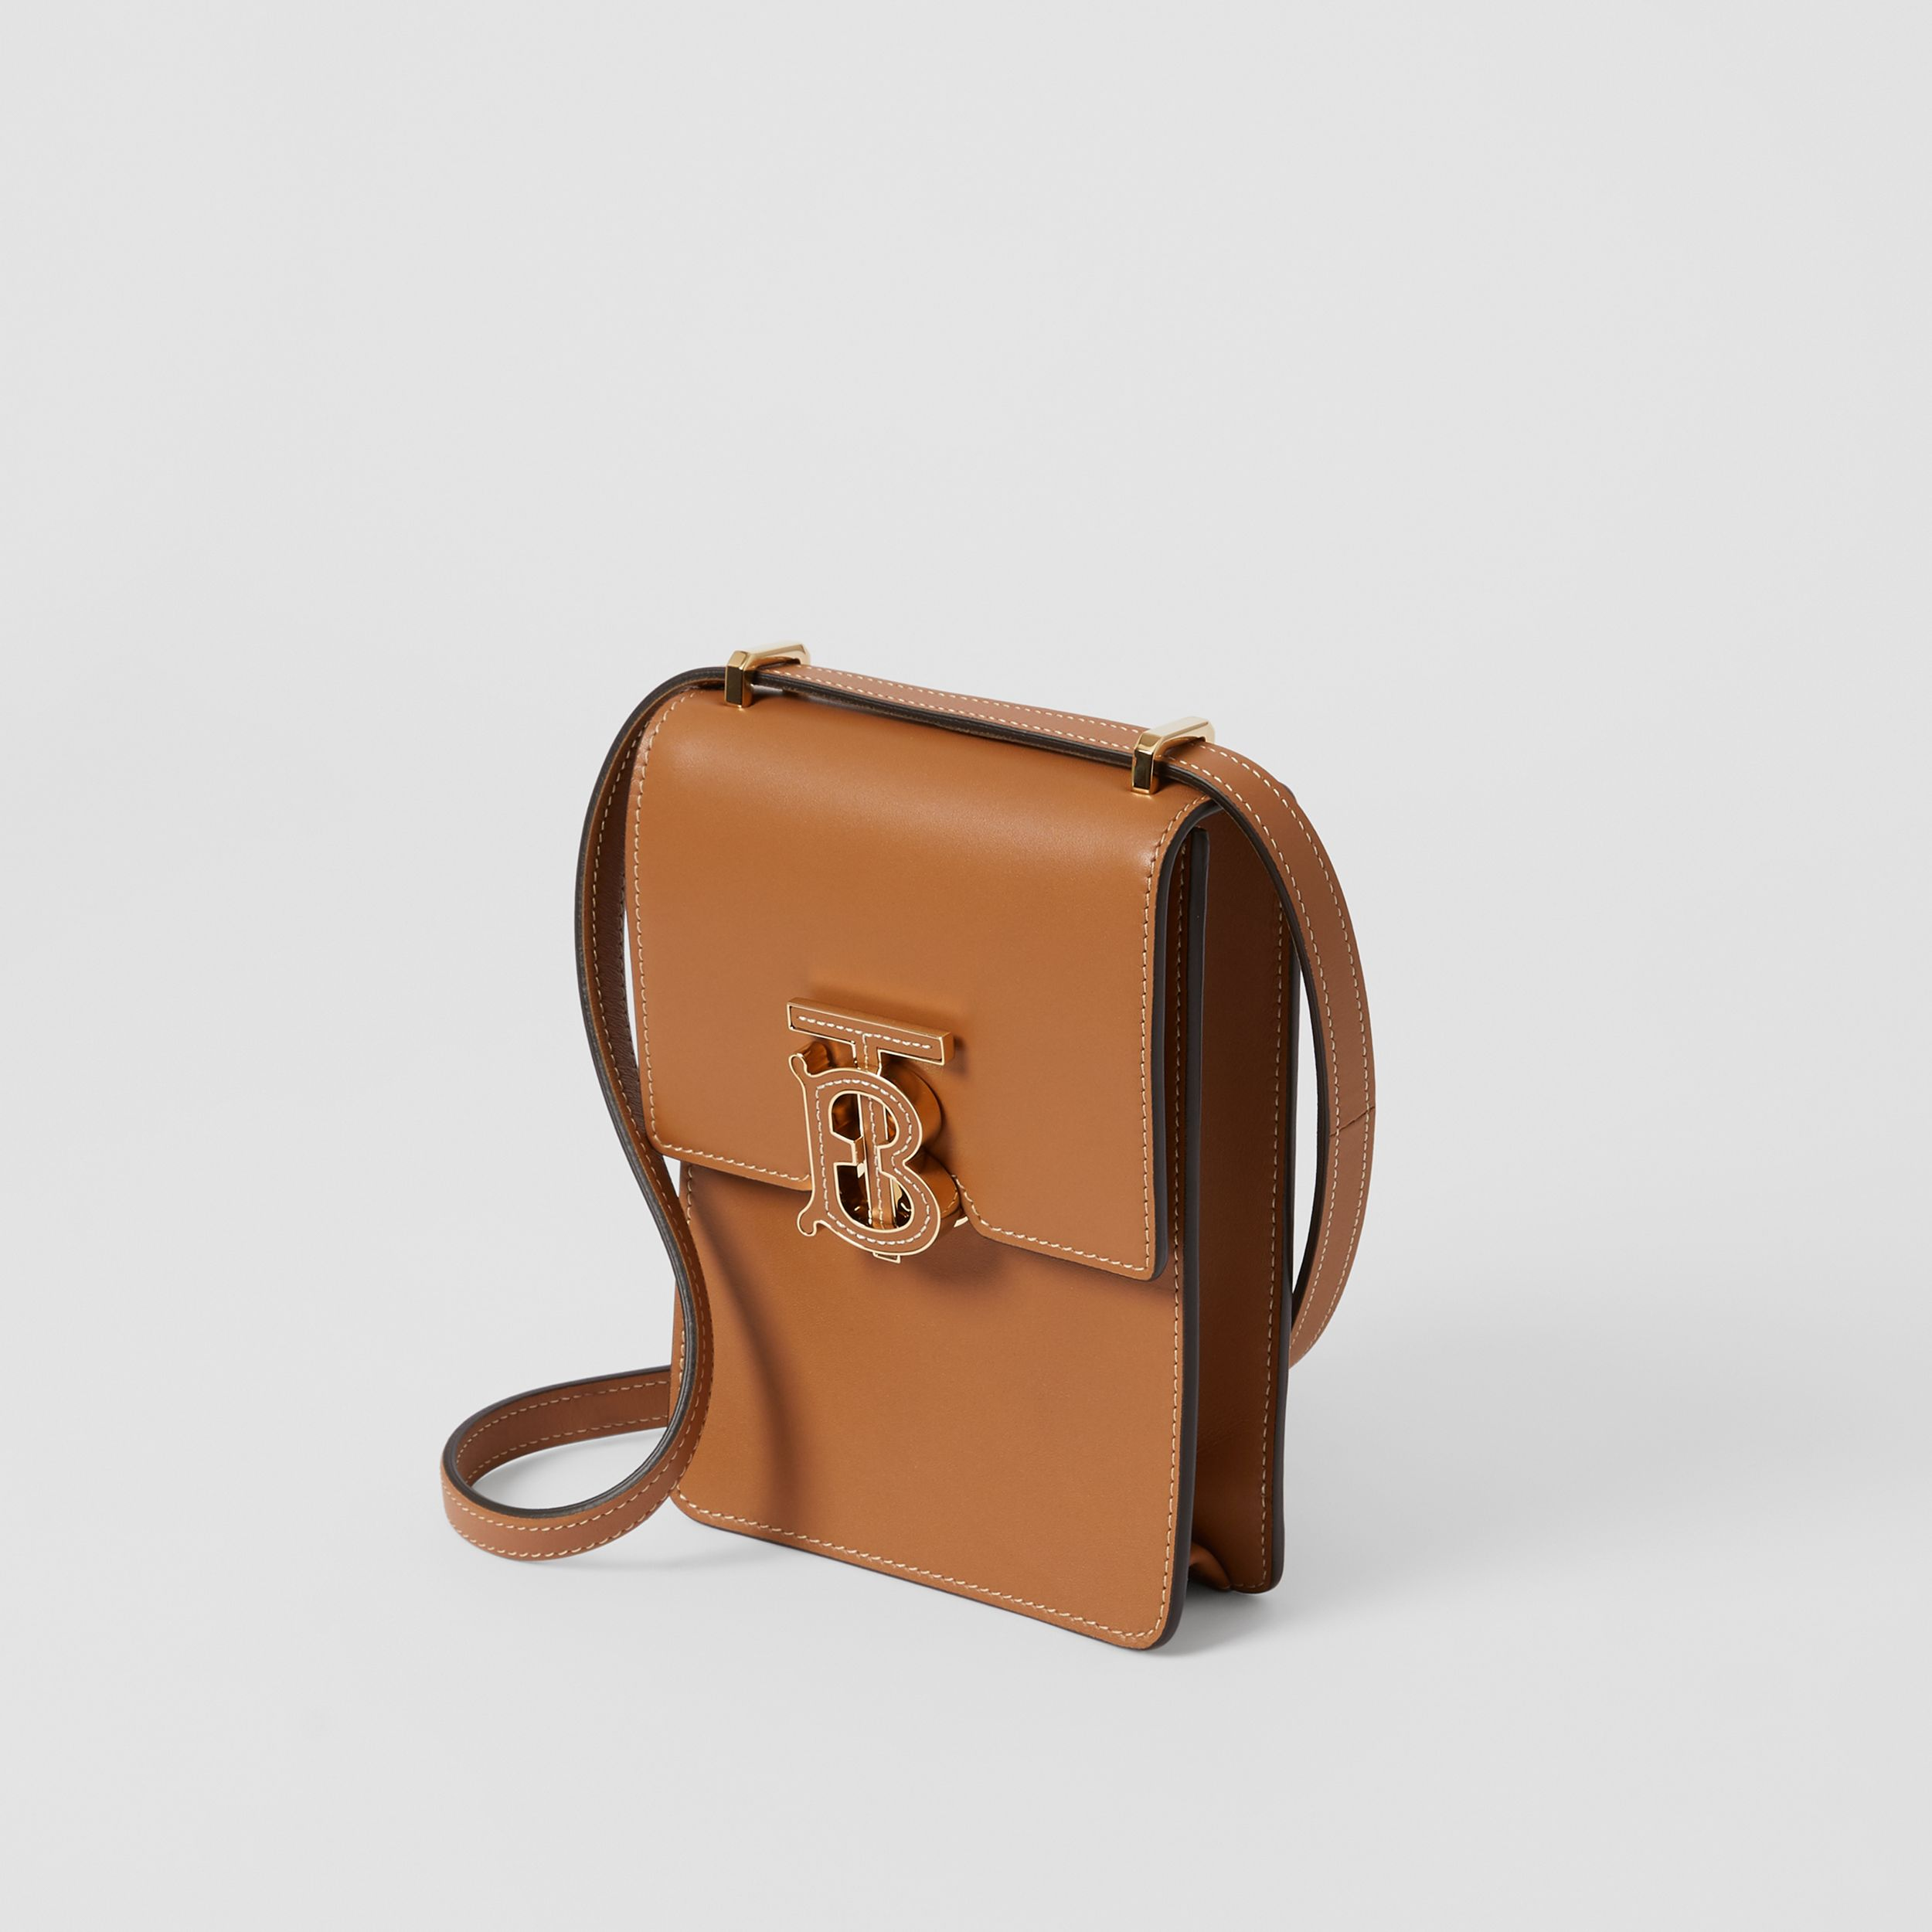 Topstitched Leather Robin Bag in Maple Brown - Women | Burberry United Kingdom - 4